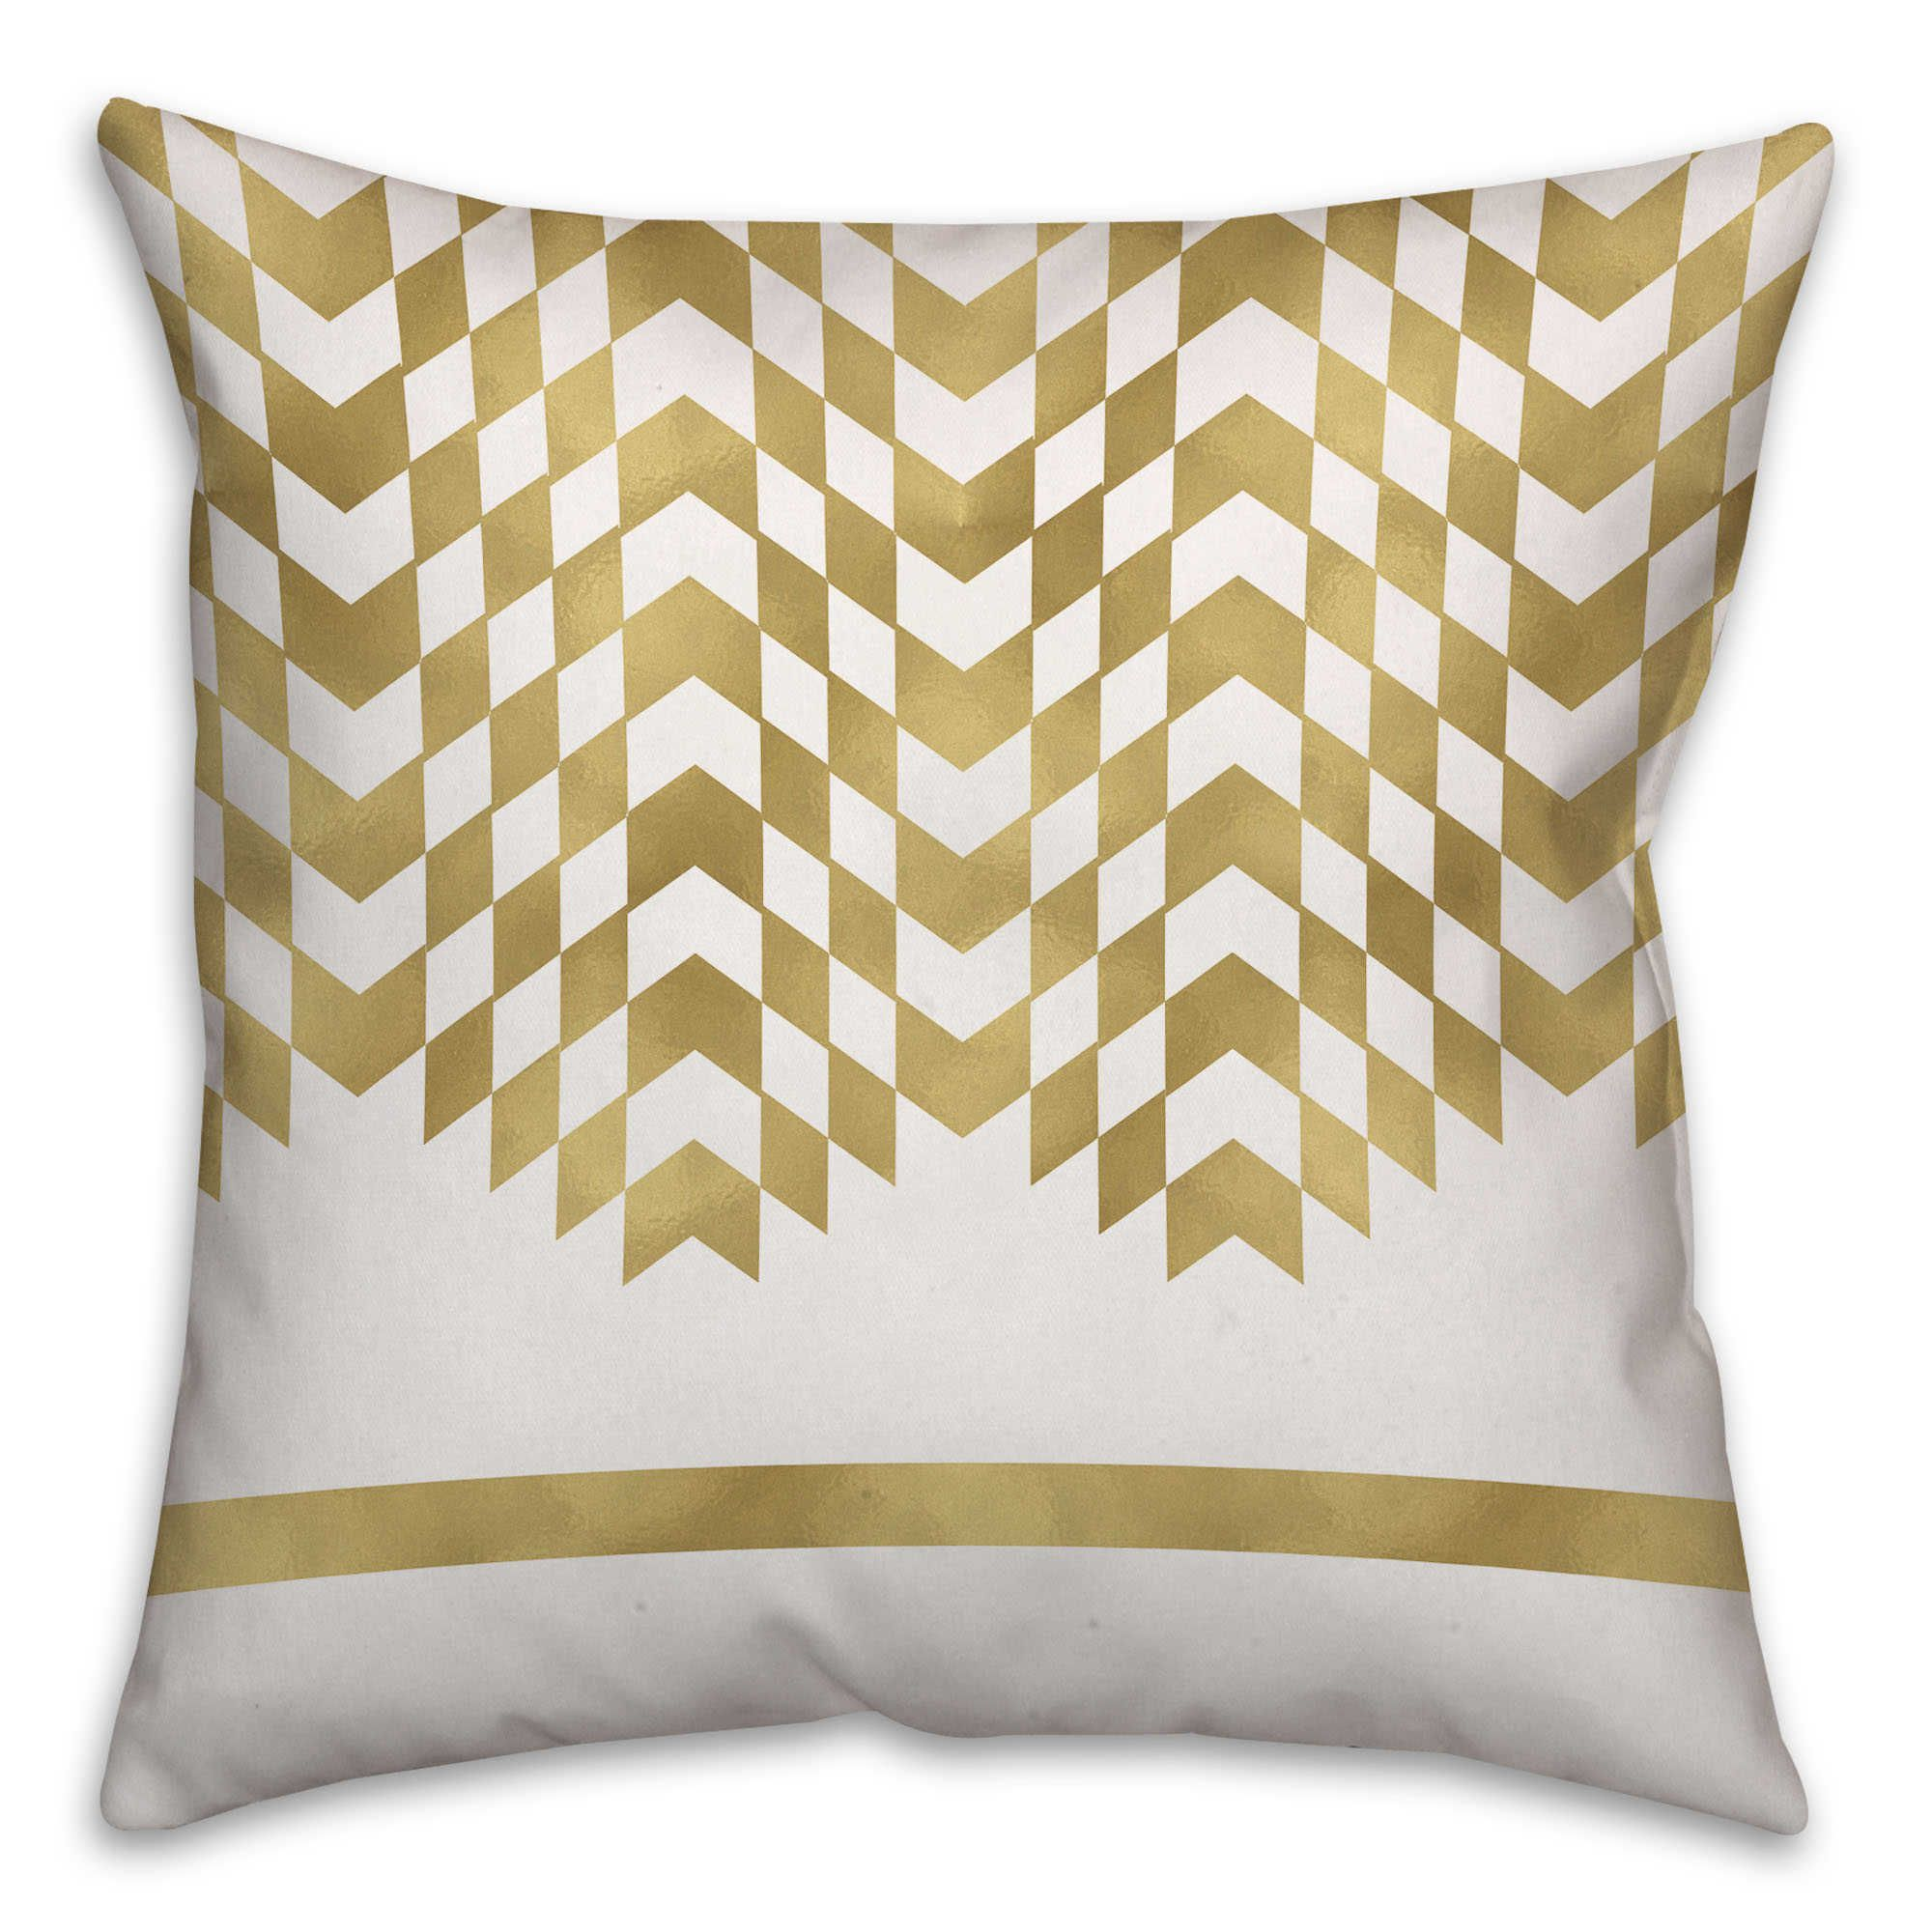 Alternating chevron square throw pillow in creamgold